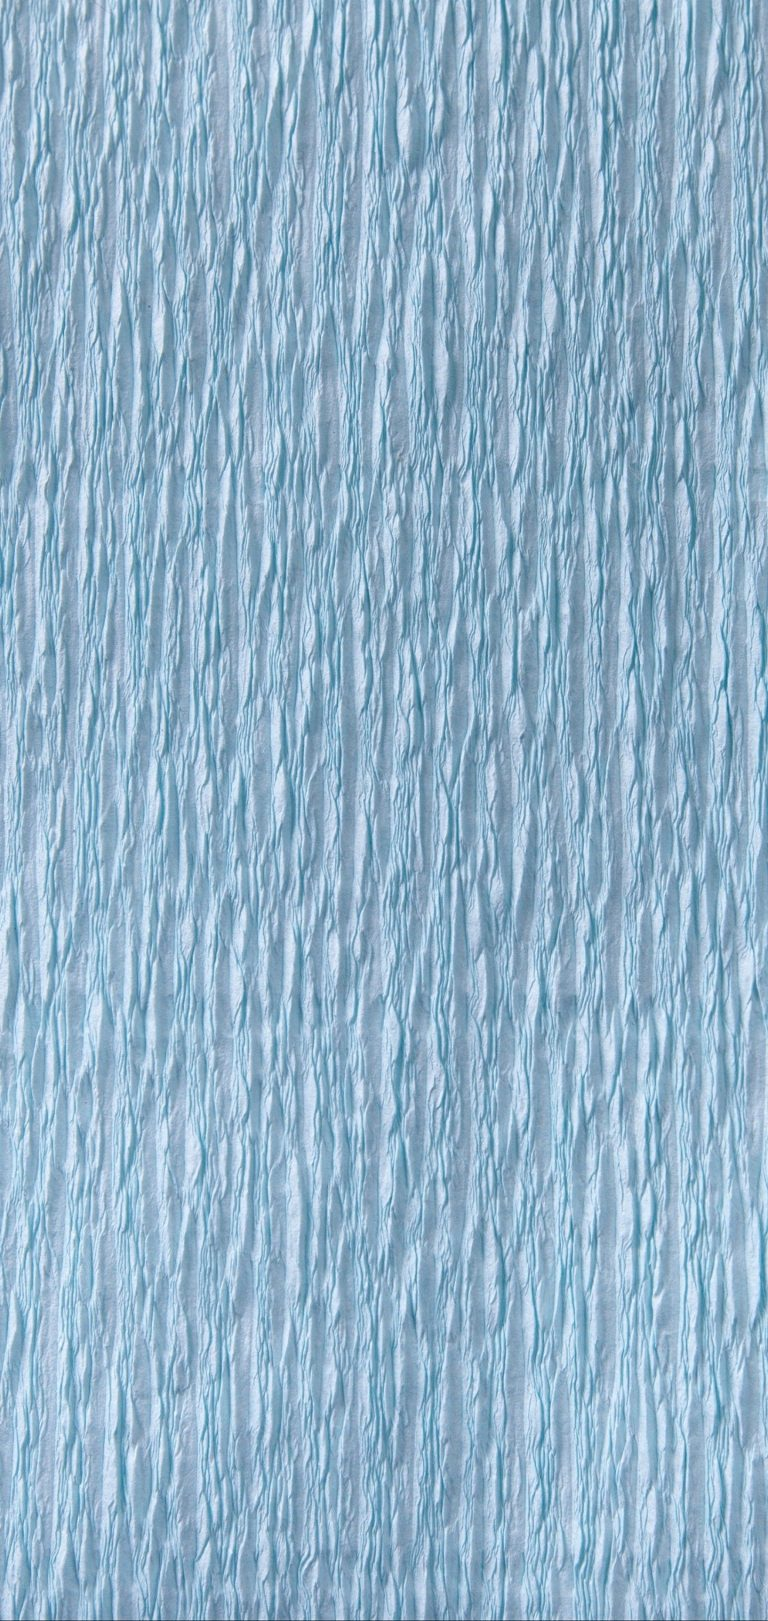 Corrugated Paper Texture Surface Wallpaper 1440x3040 768x1621